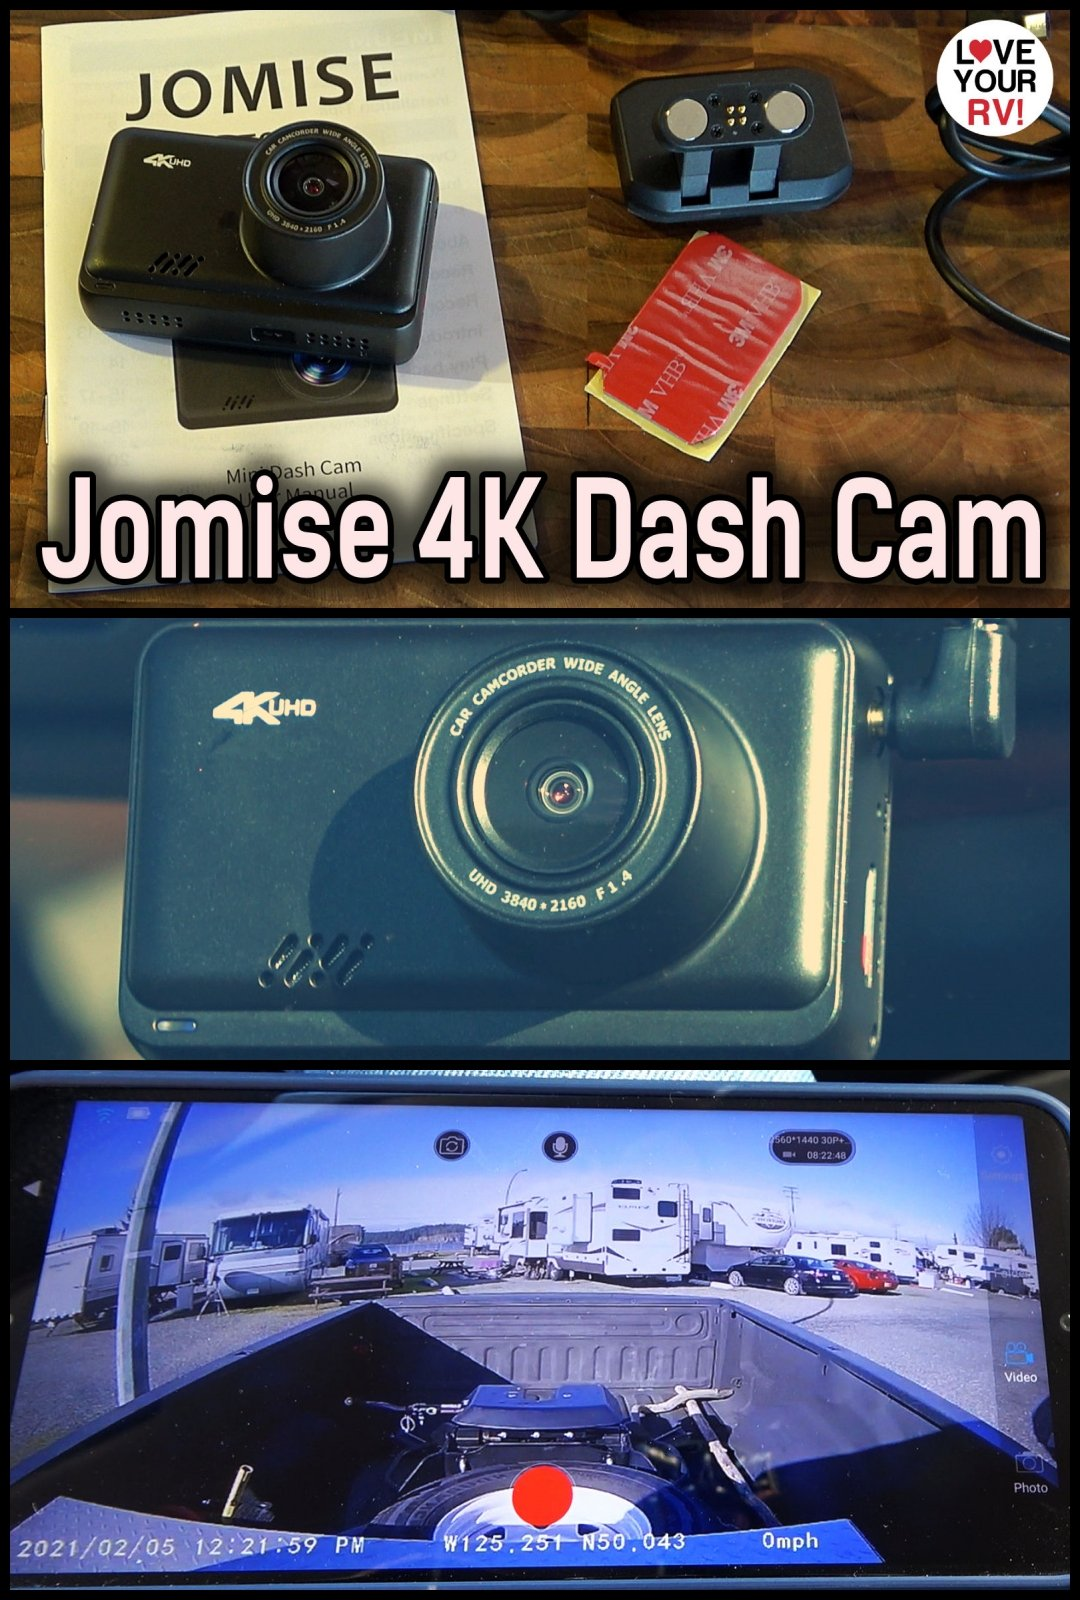 Reviewing the Jomise Model F2S 4K Dual Dash Cam